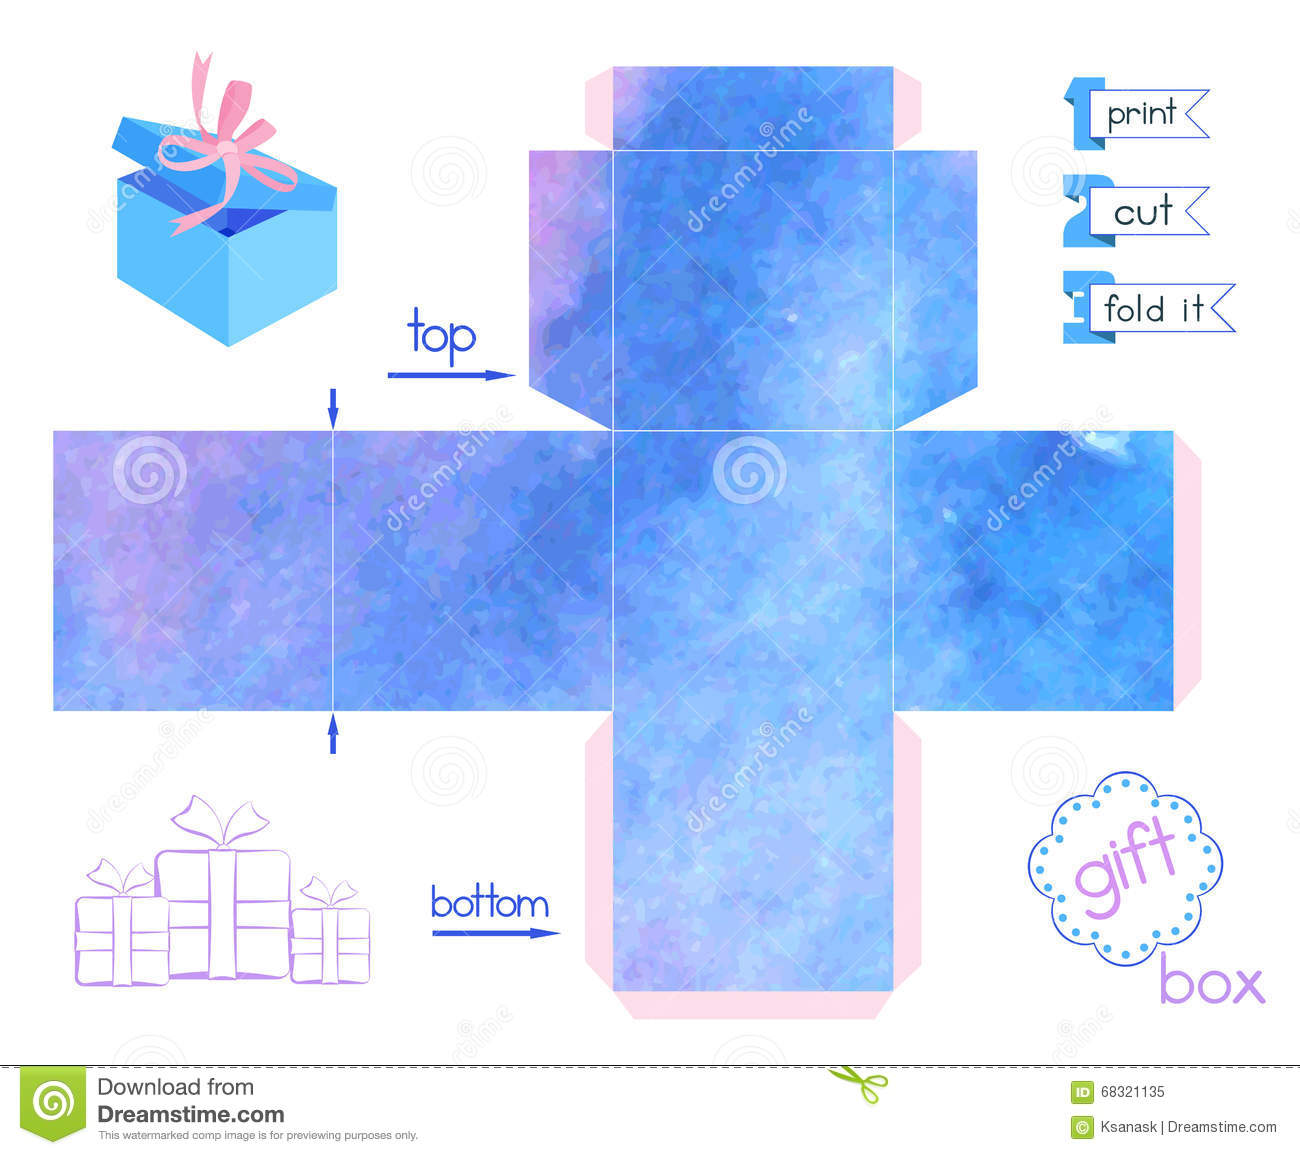 photograph regarding Printable Box identify Printable Reward Box With Blue Blurring Watercolor Imitation